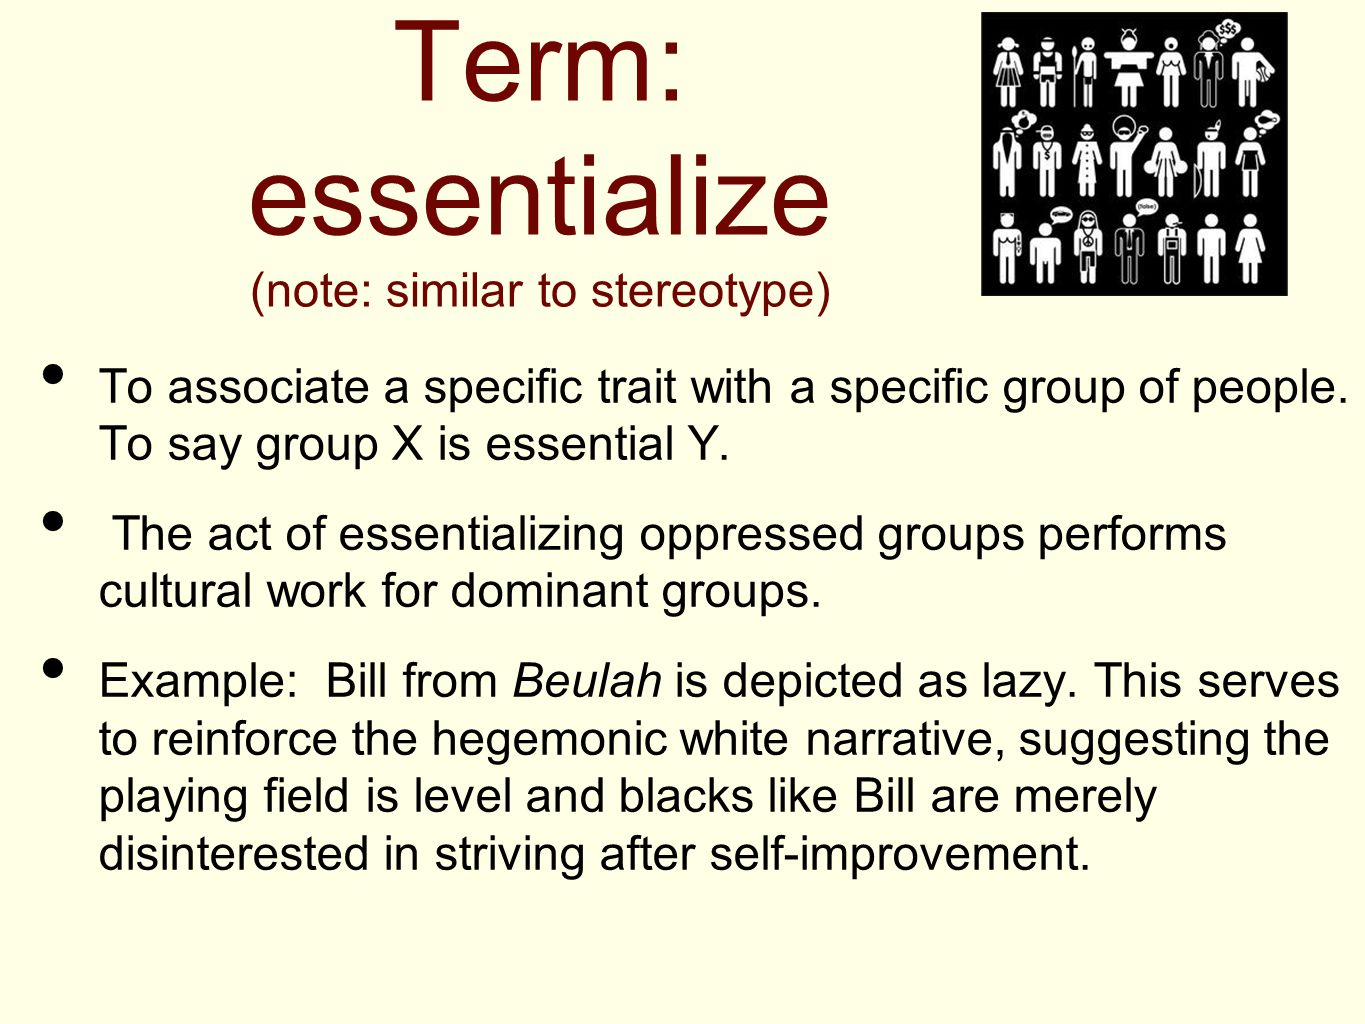 Term: essentialize (note: similar to stereotype) To associate a specific trait with a specific group of people. To say group X is essential Y. The act